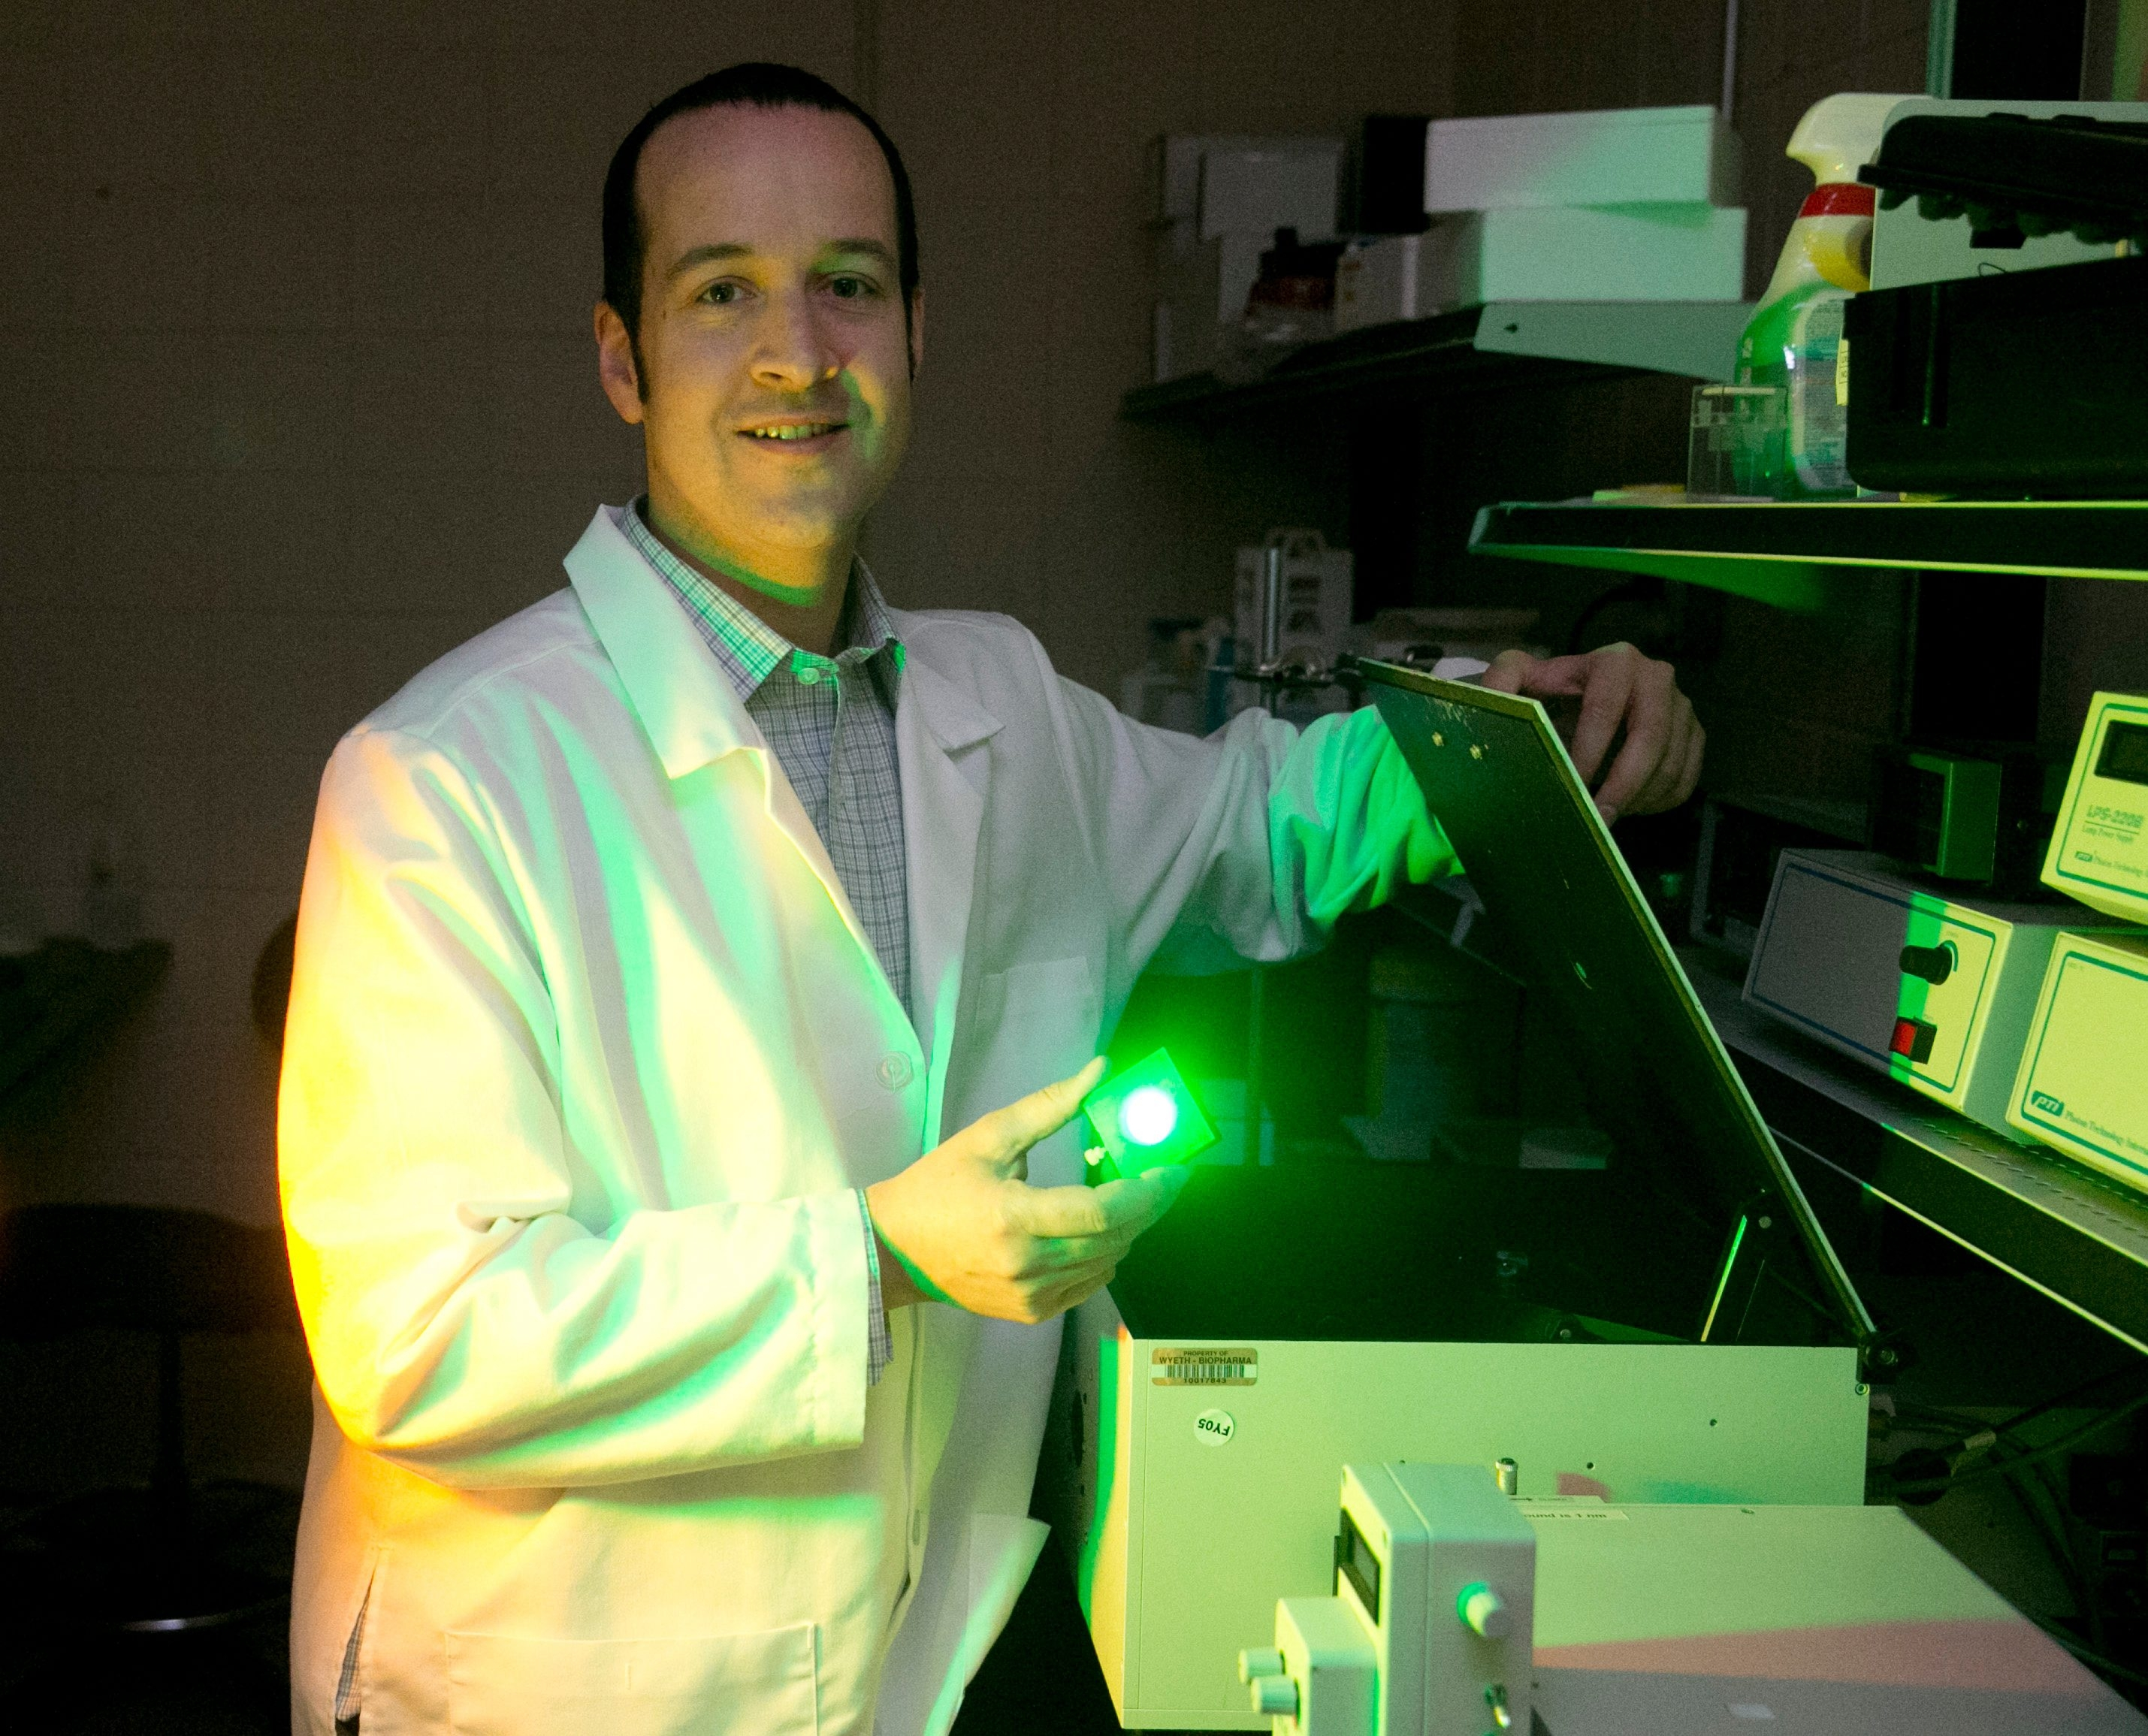 Jonathan Lovell, an assistant professor of biomedical engineering at UB since 2012, has already helped found two companies.